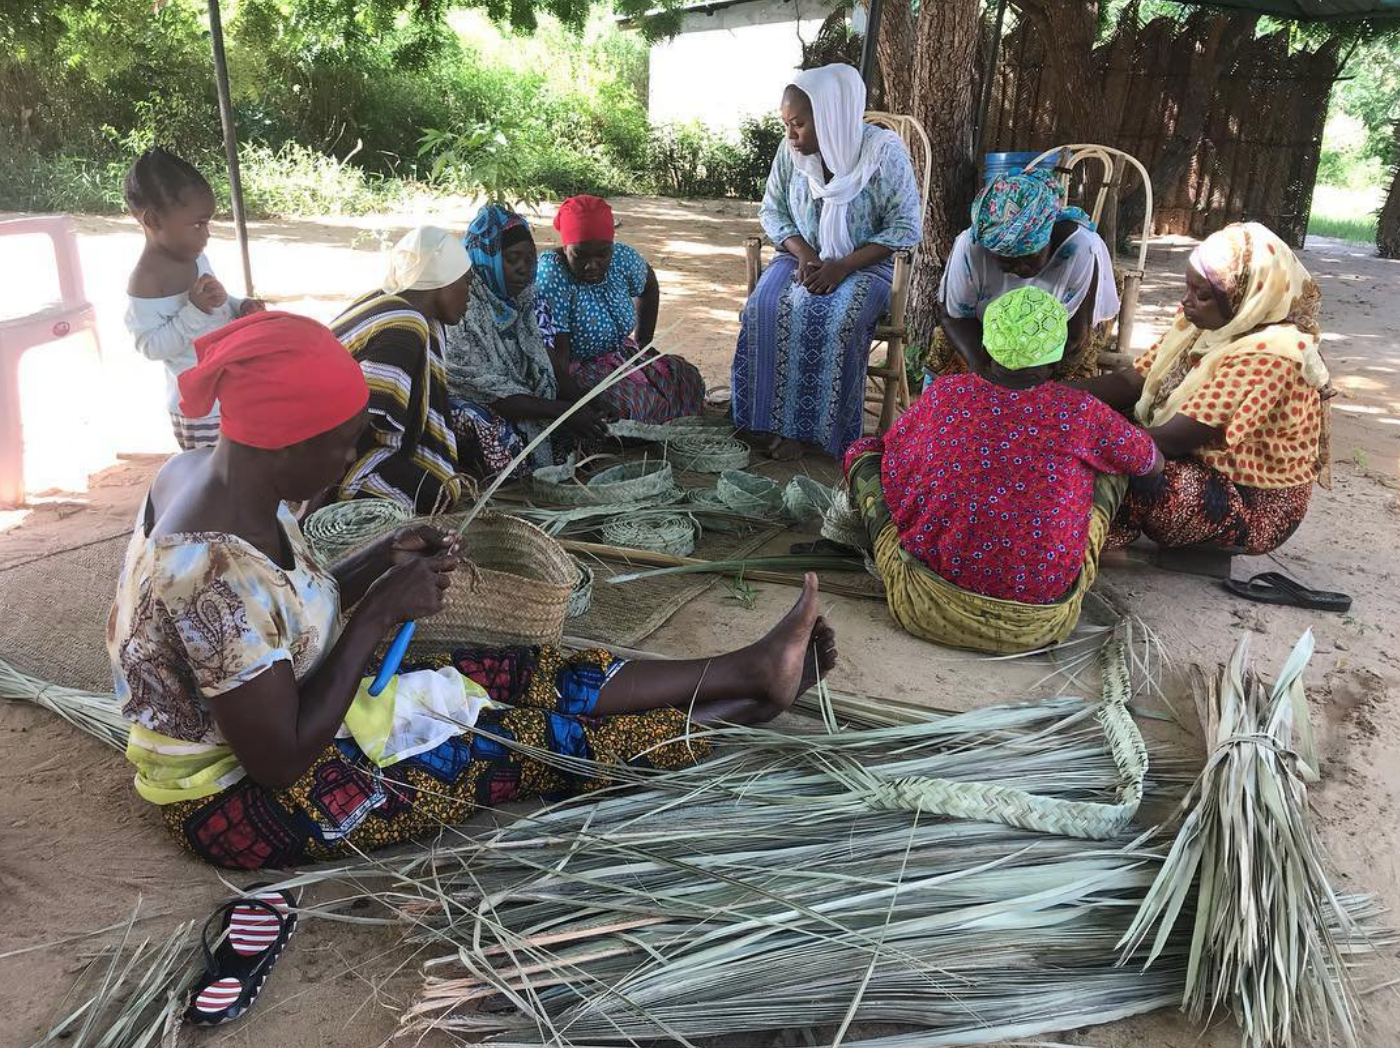 Tanzania's Government will ban the use of plastic bags beginning on July 1, 2019. As a response, the women's cooperative WAUTO Kaole (supported by  @SPInitiative ) has embarked on producing baskets, mats etc using locally available environmentally friendly materials. Visit Kaole and buy!